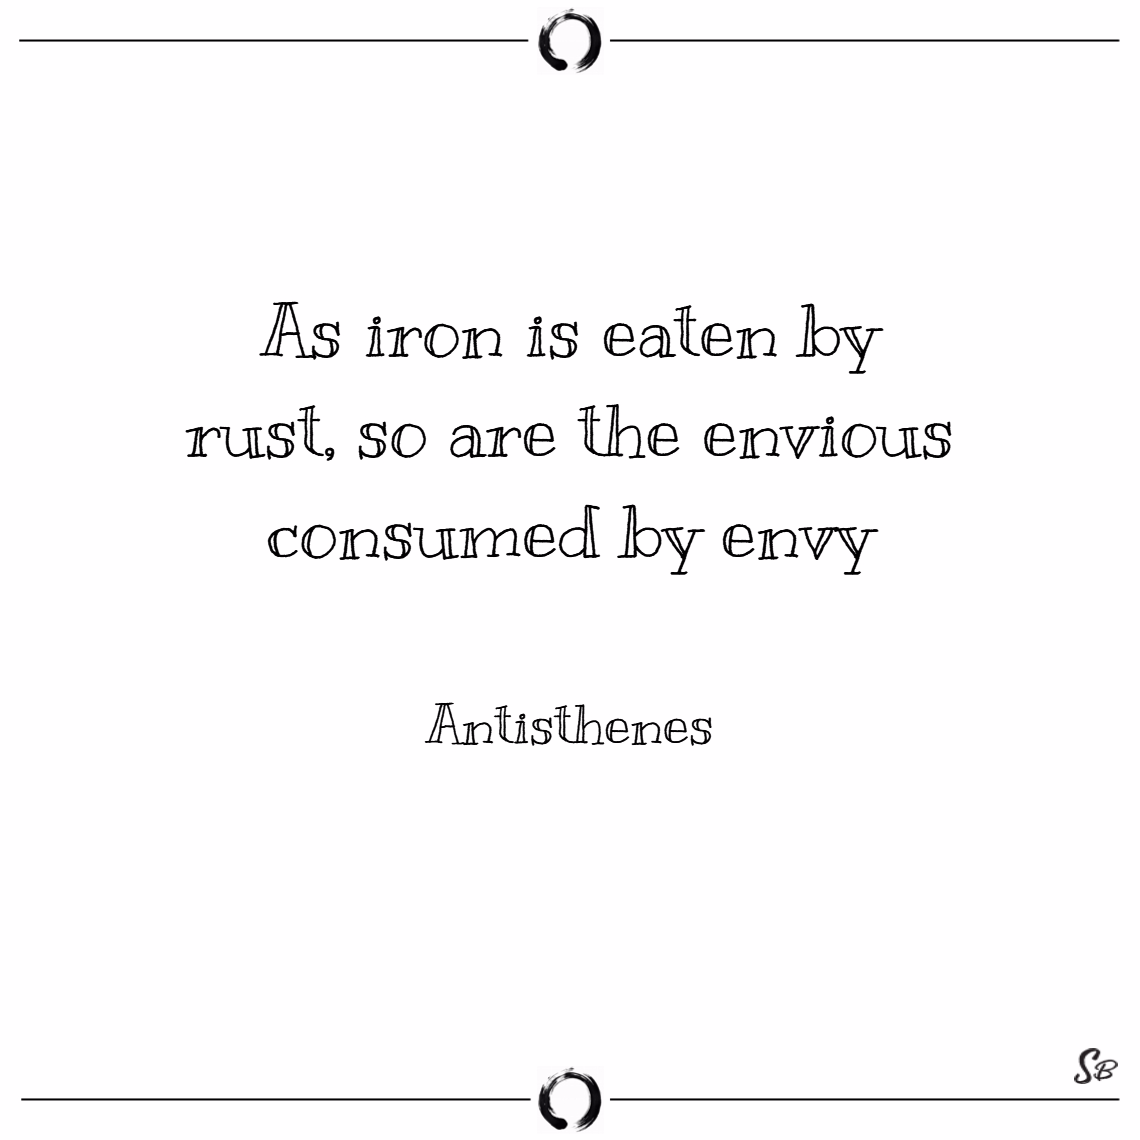 As iron is eaten by rust, so are the envious consumed by envy. – antisthenes Envy quotes